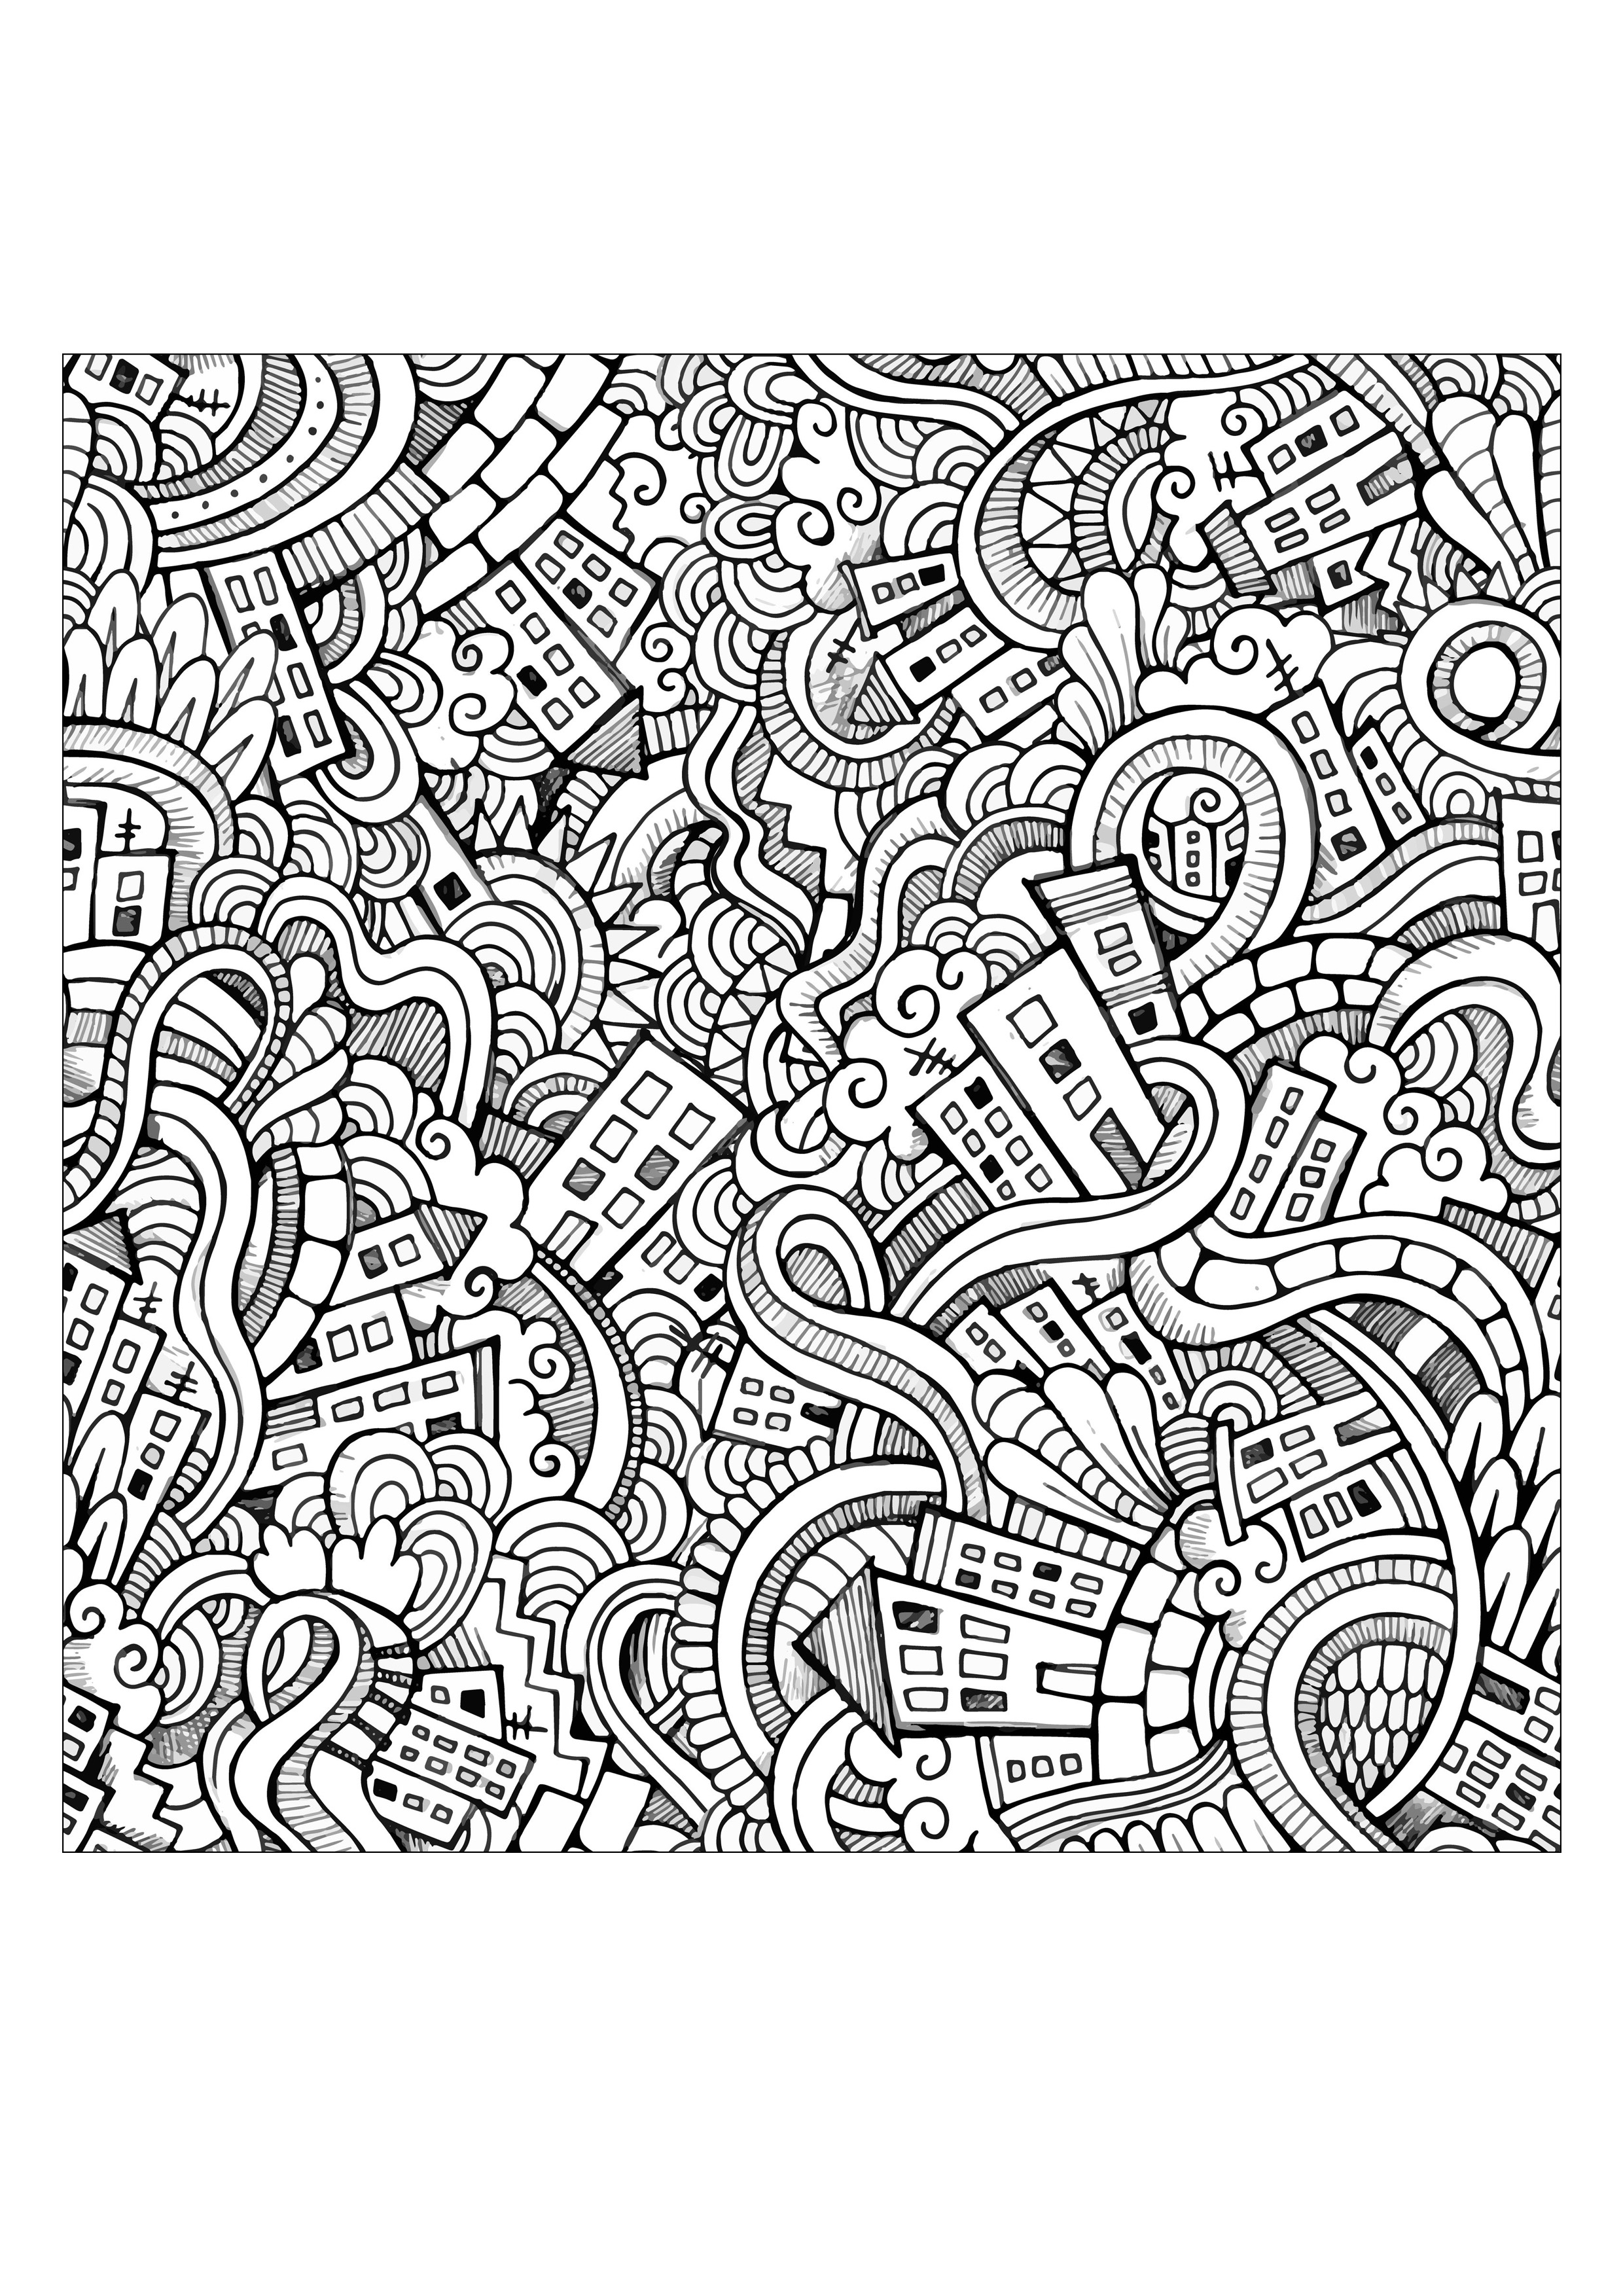 doodle coloring pages coloring pages printable doodles kids coloring home pages coloring doodle